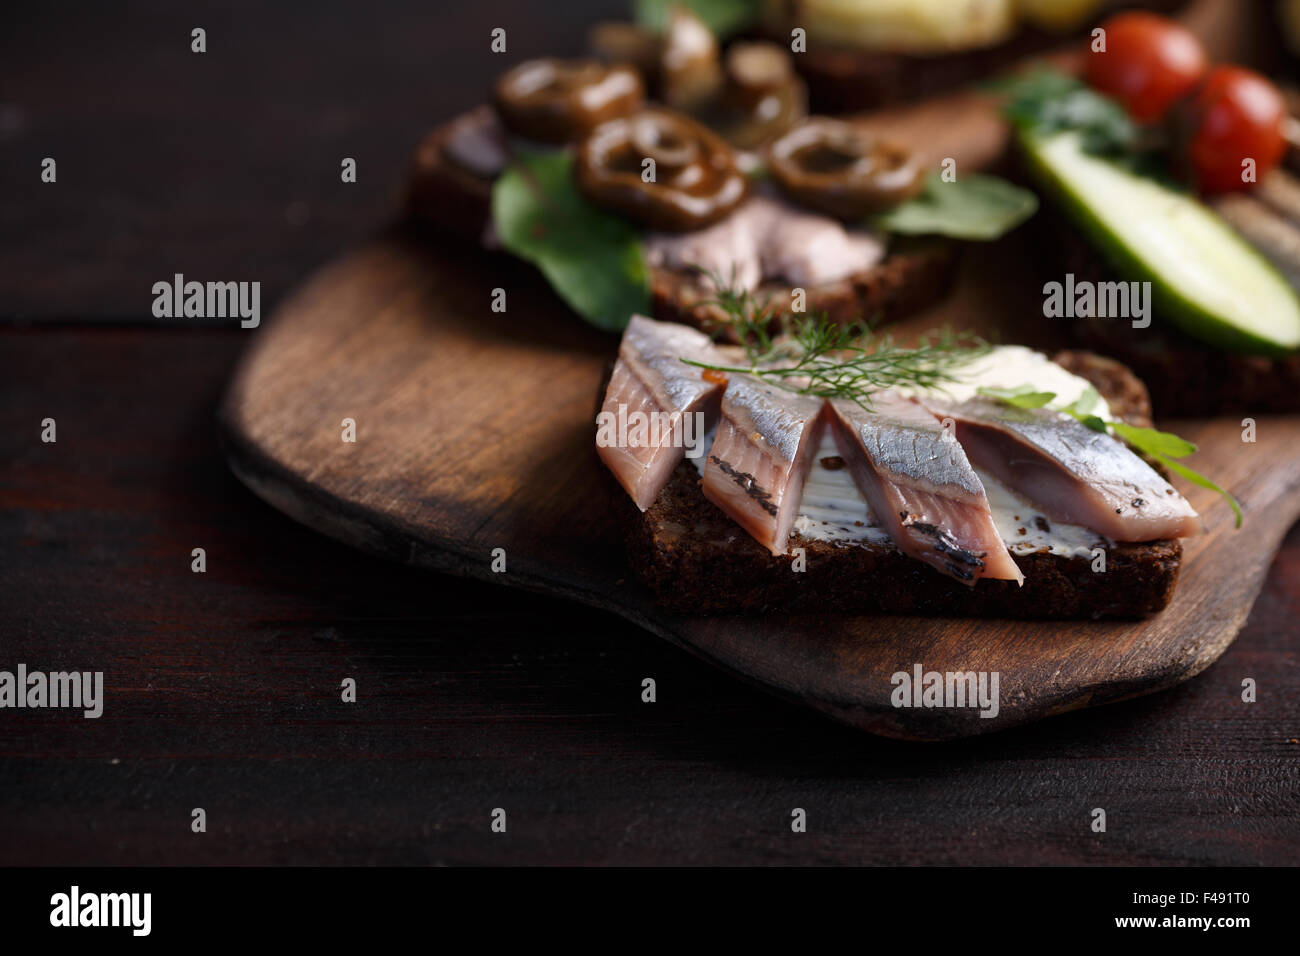 Variety of open sandwiches of buttered dense, dark rye bread with different toppings. Danish smorrebrods on wooden - Stock Image